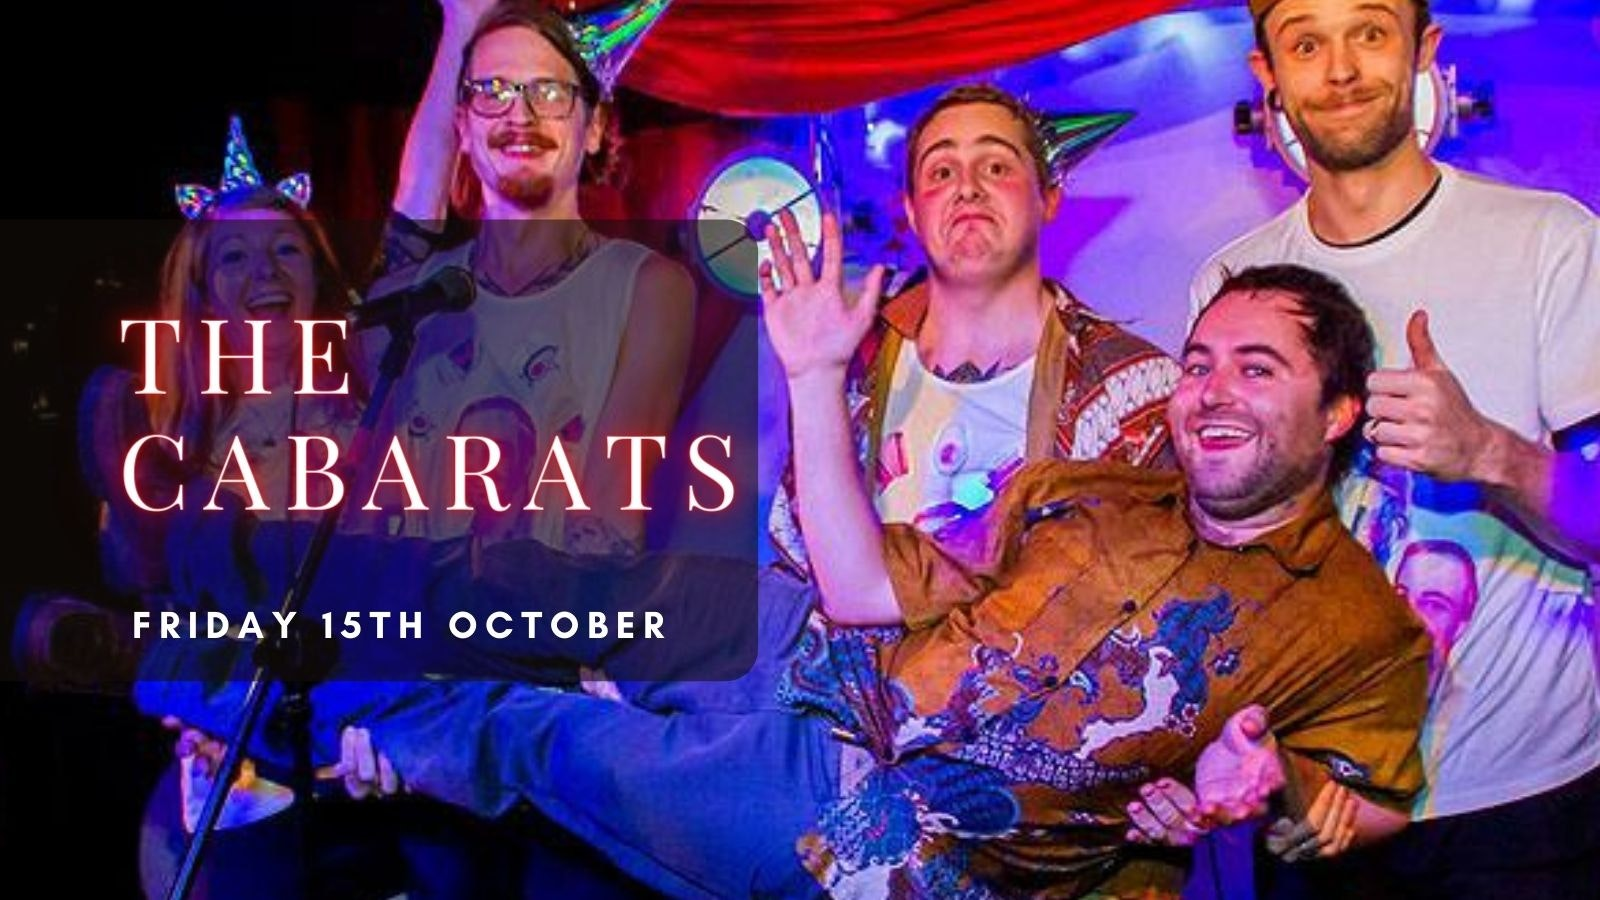 THE CABARATS | Plymouth, Annabel's Cabaret & Discotheque